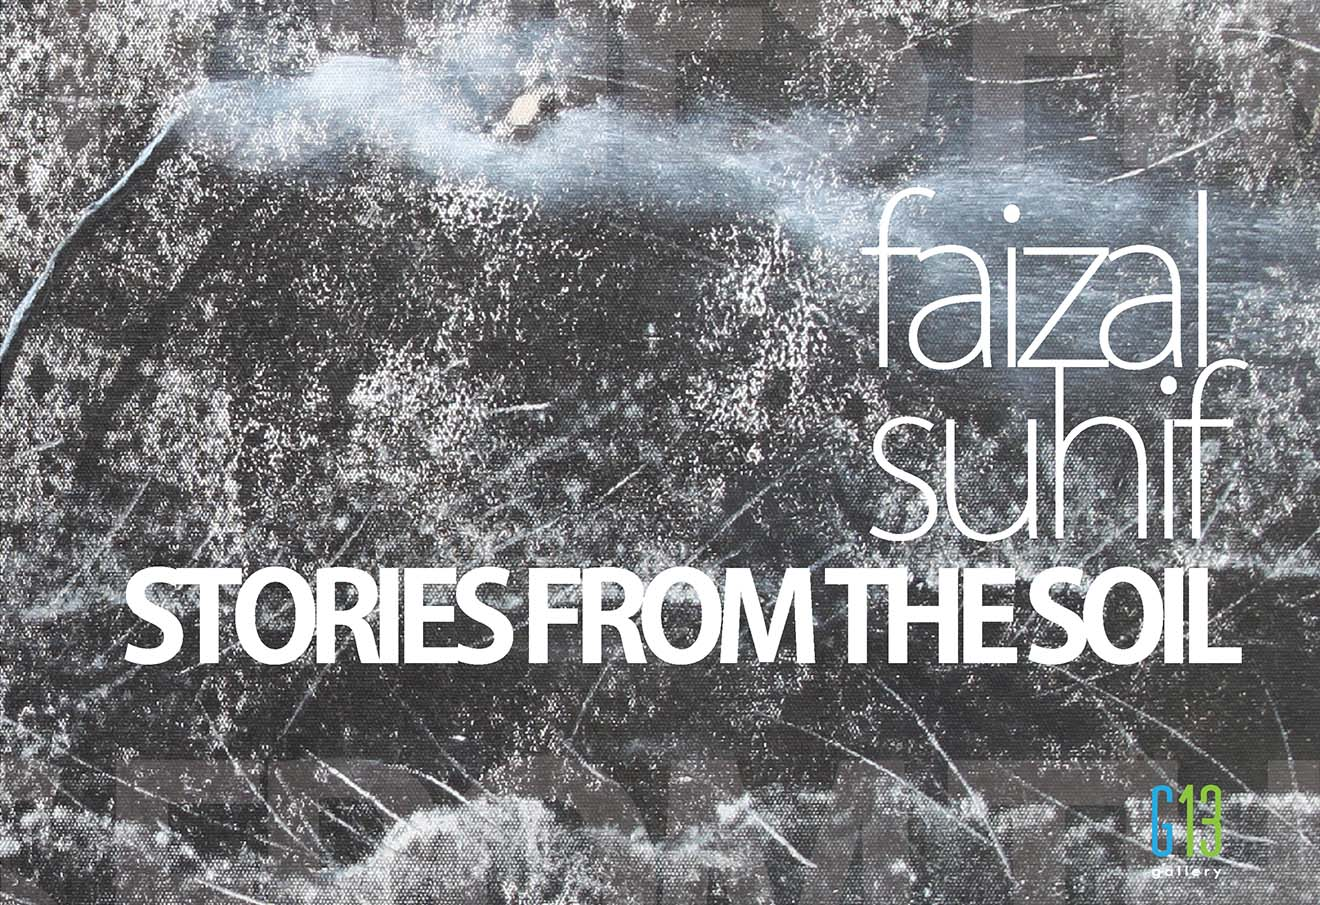 Faizal Suhif Stories From The Soil